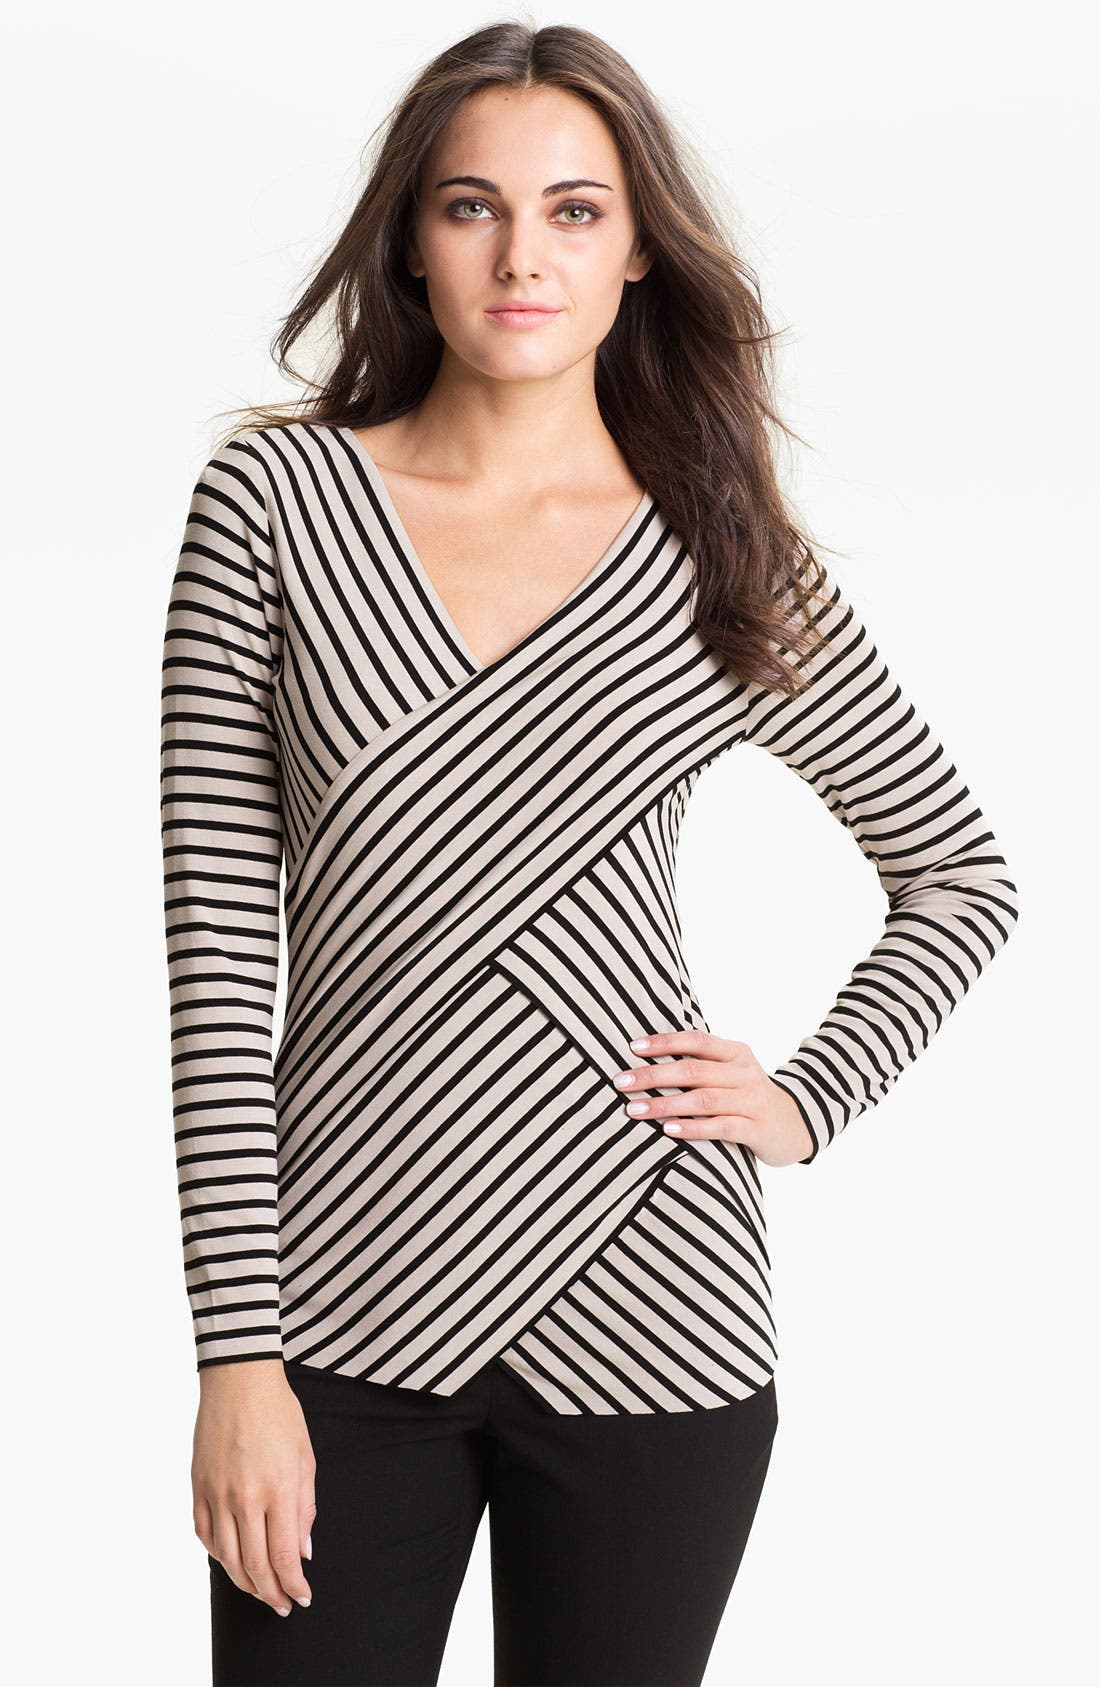 Main Image - Vince Camuto 'Zigzag' Top (Petite)